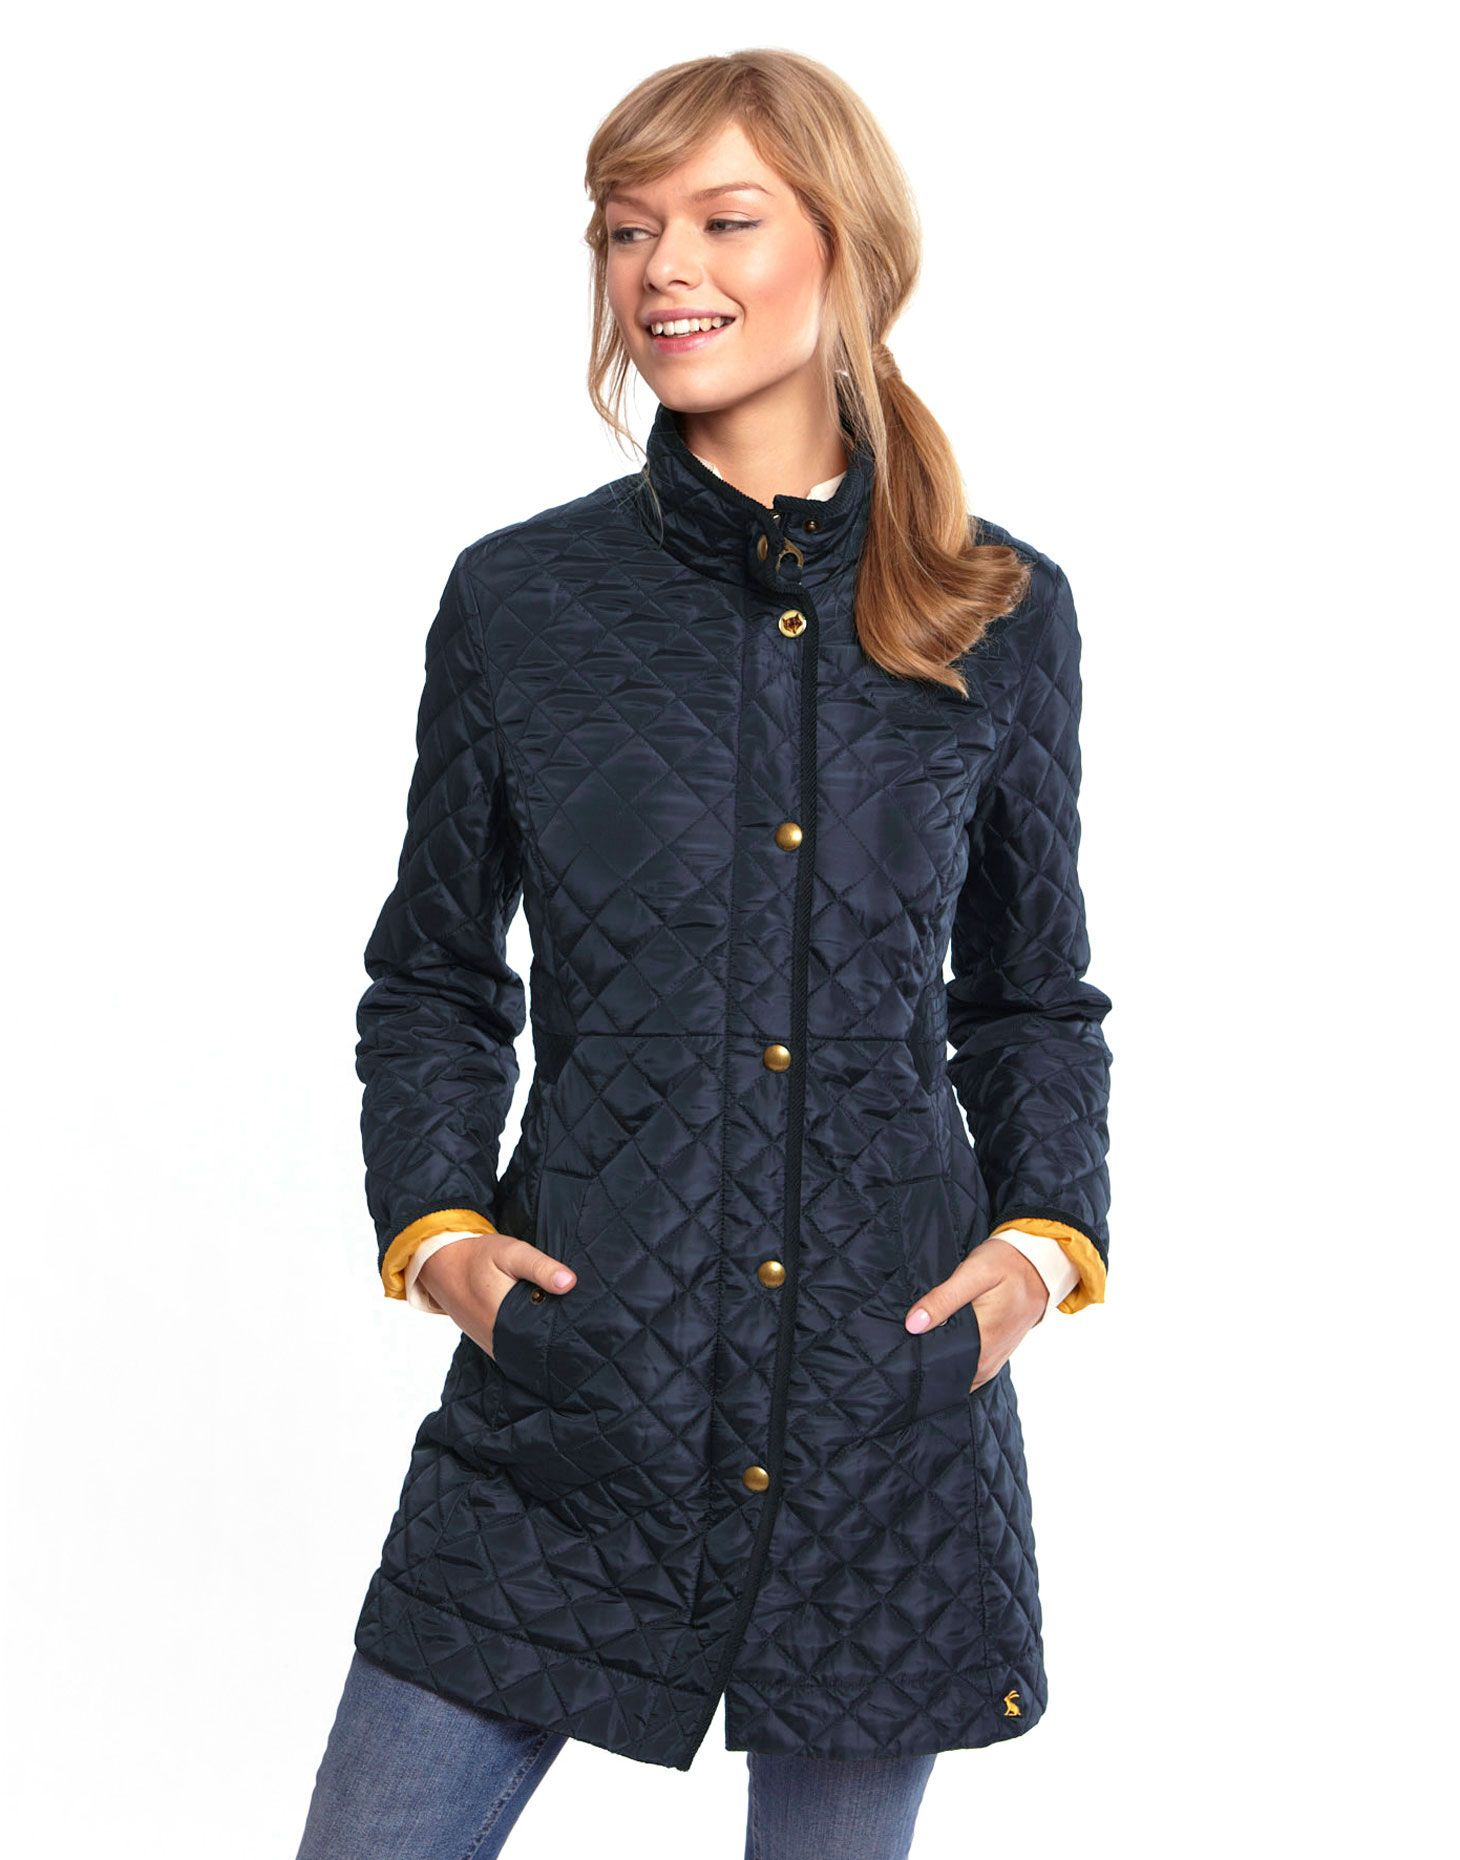 Joules Womens Long Length Quilted Coat, Navy. We believe seeing ...